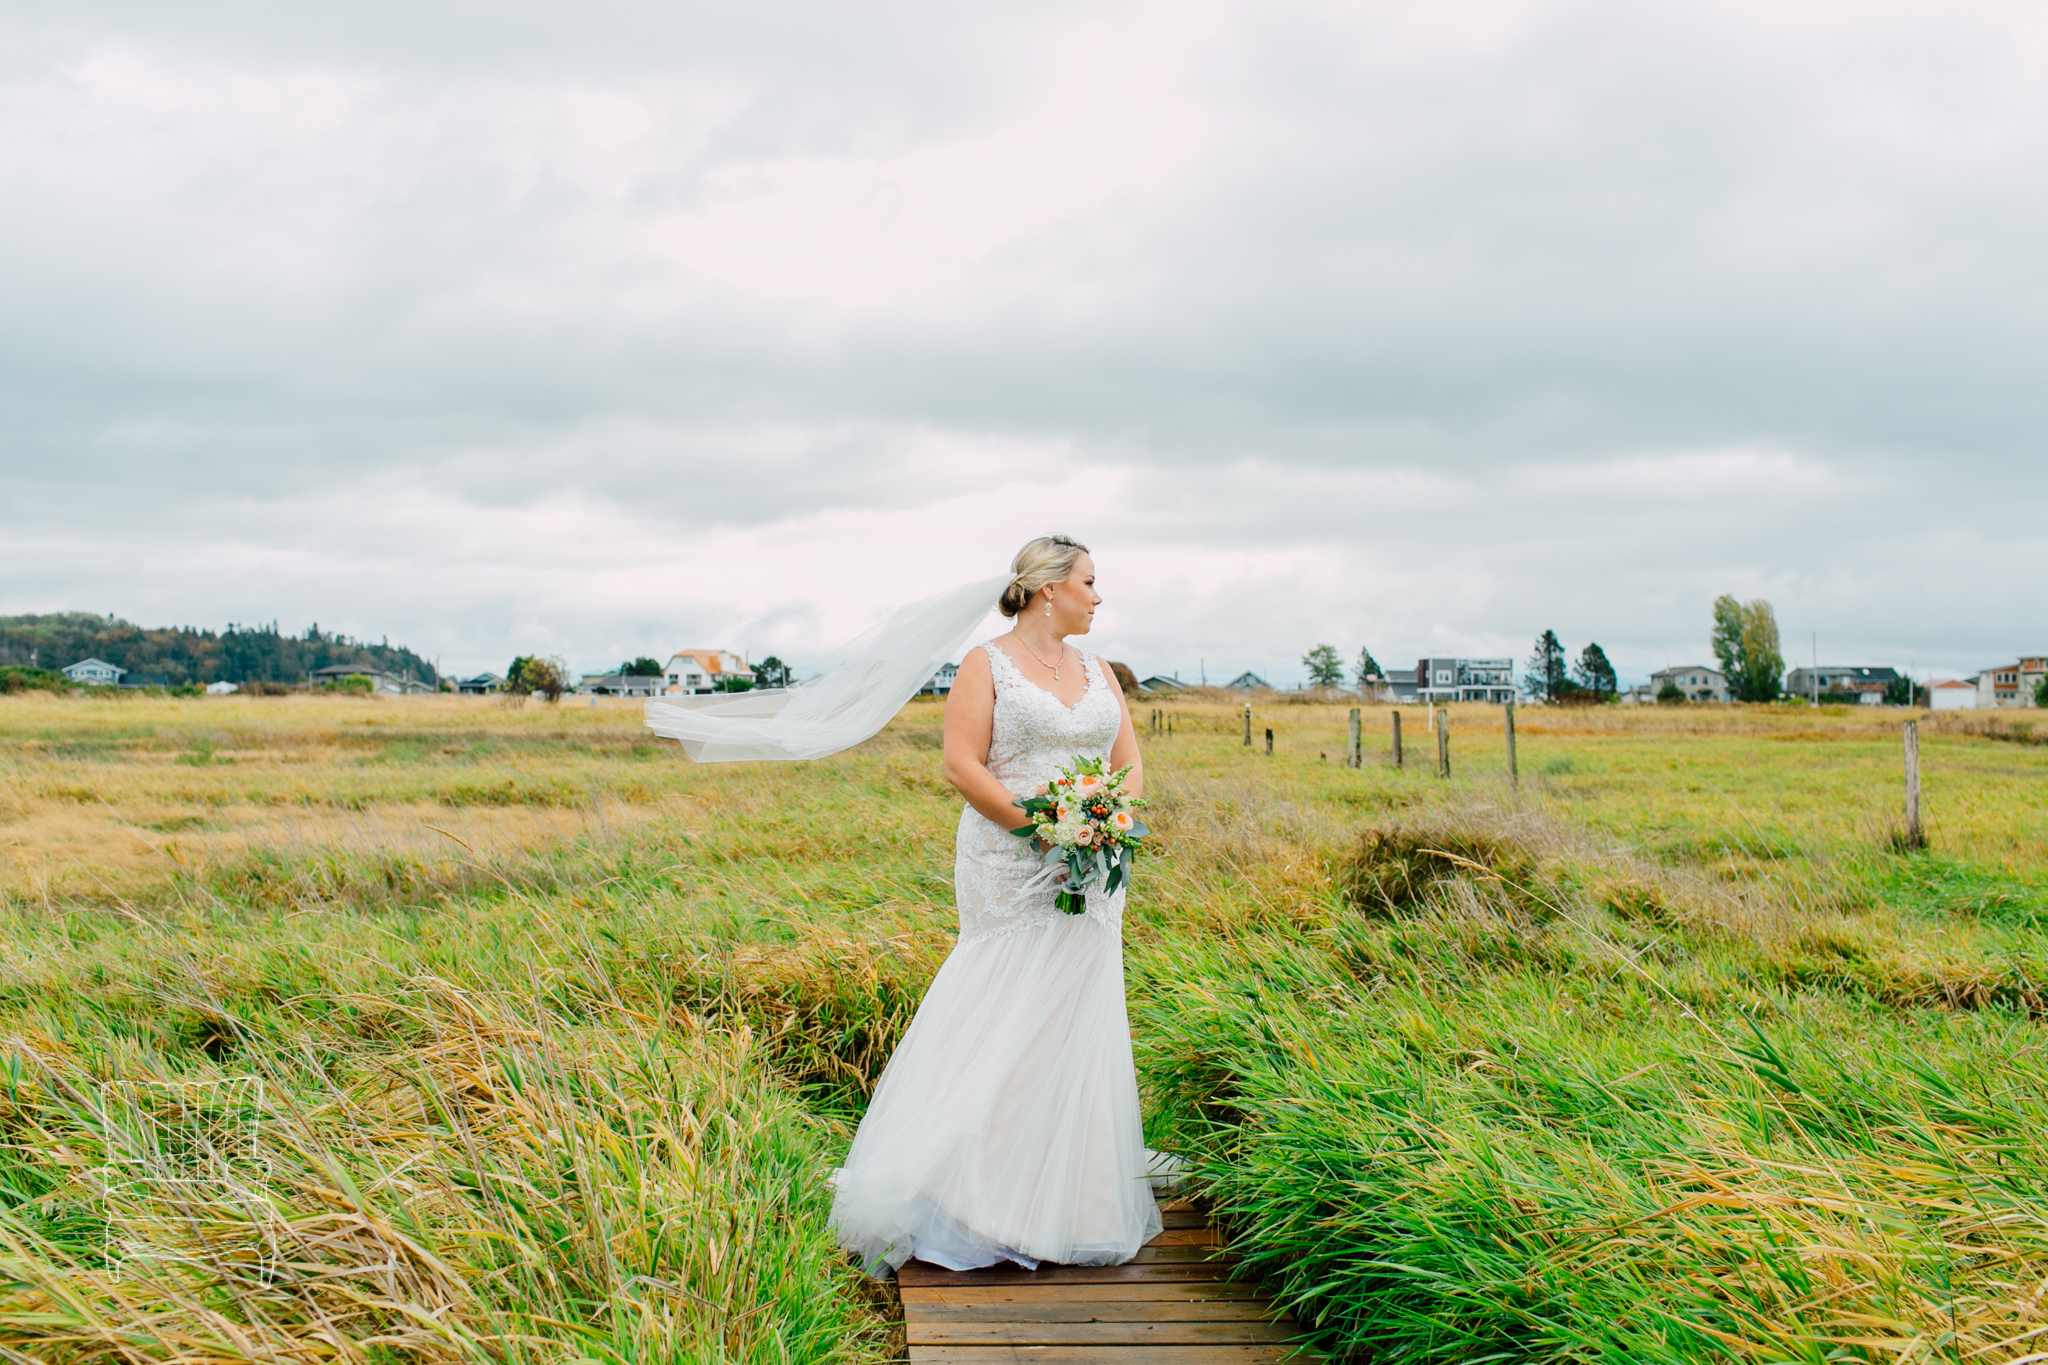 bellingham-bay-wedding-photographer-katheryn-moran-neptune-bay-ep-1.jpg